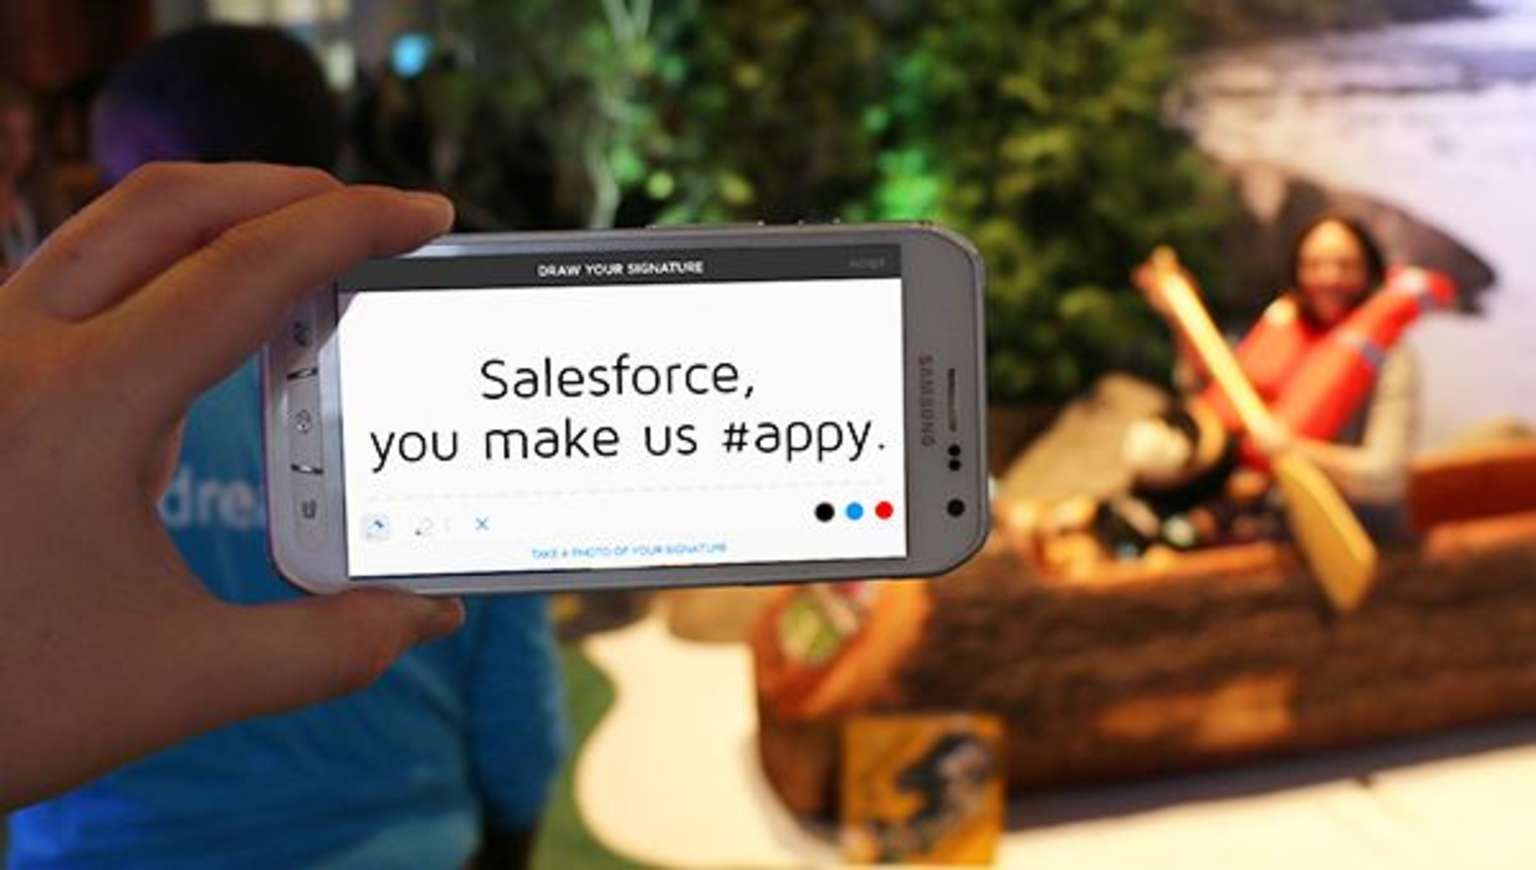 Learn about DocuSign's award from Salesforce